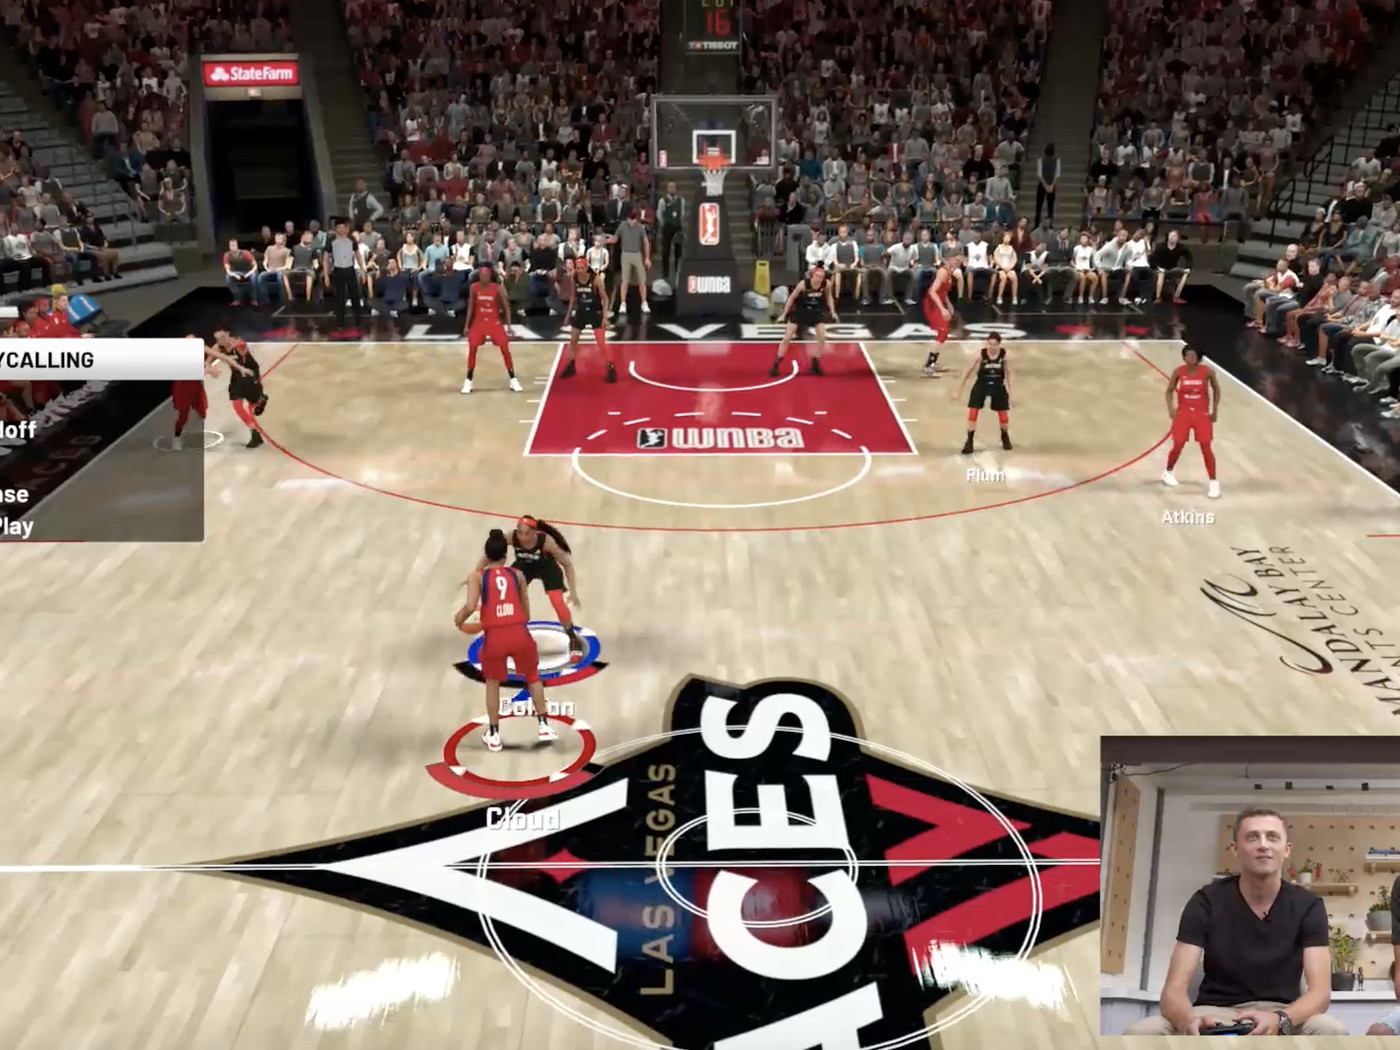 Wnba 2k 8 Things I Learned Playing Against An Actual Wnba